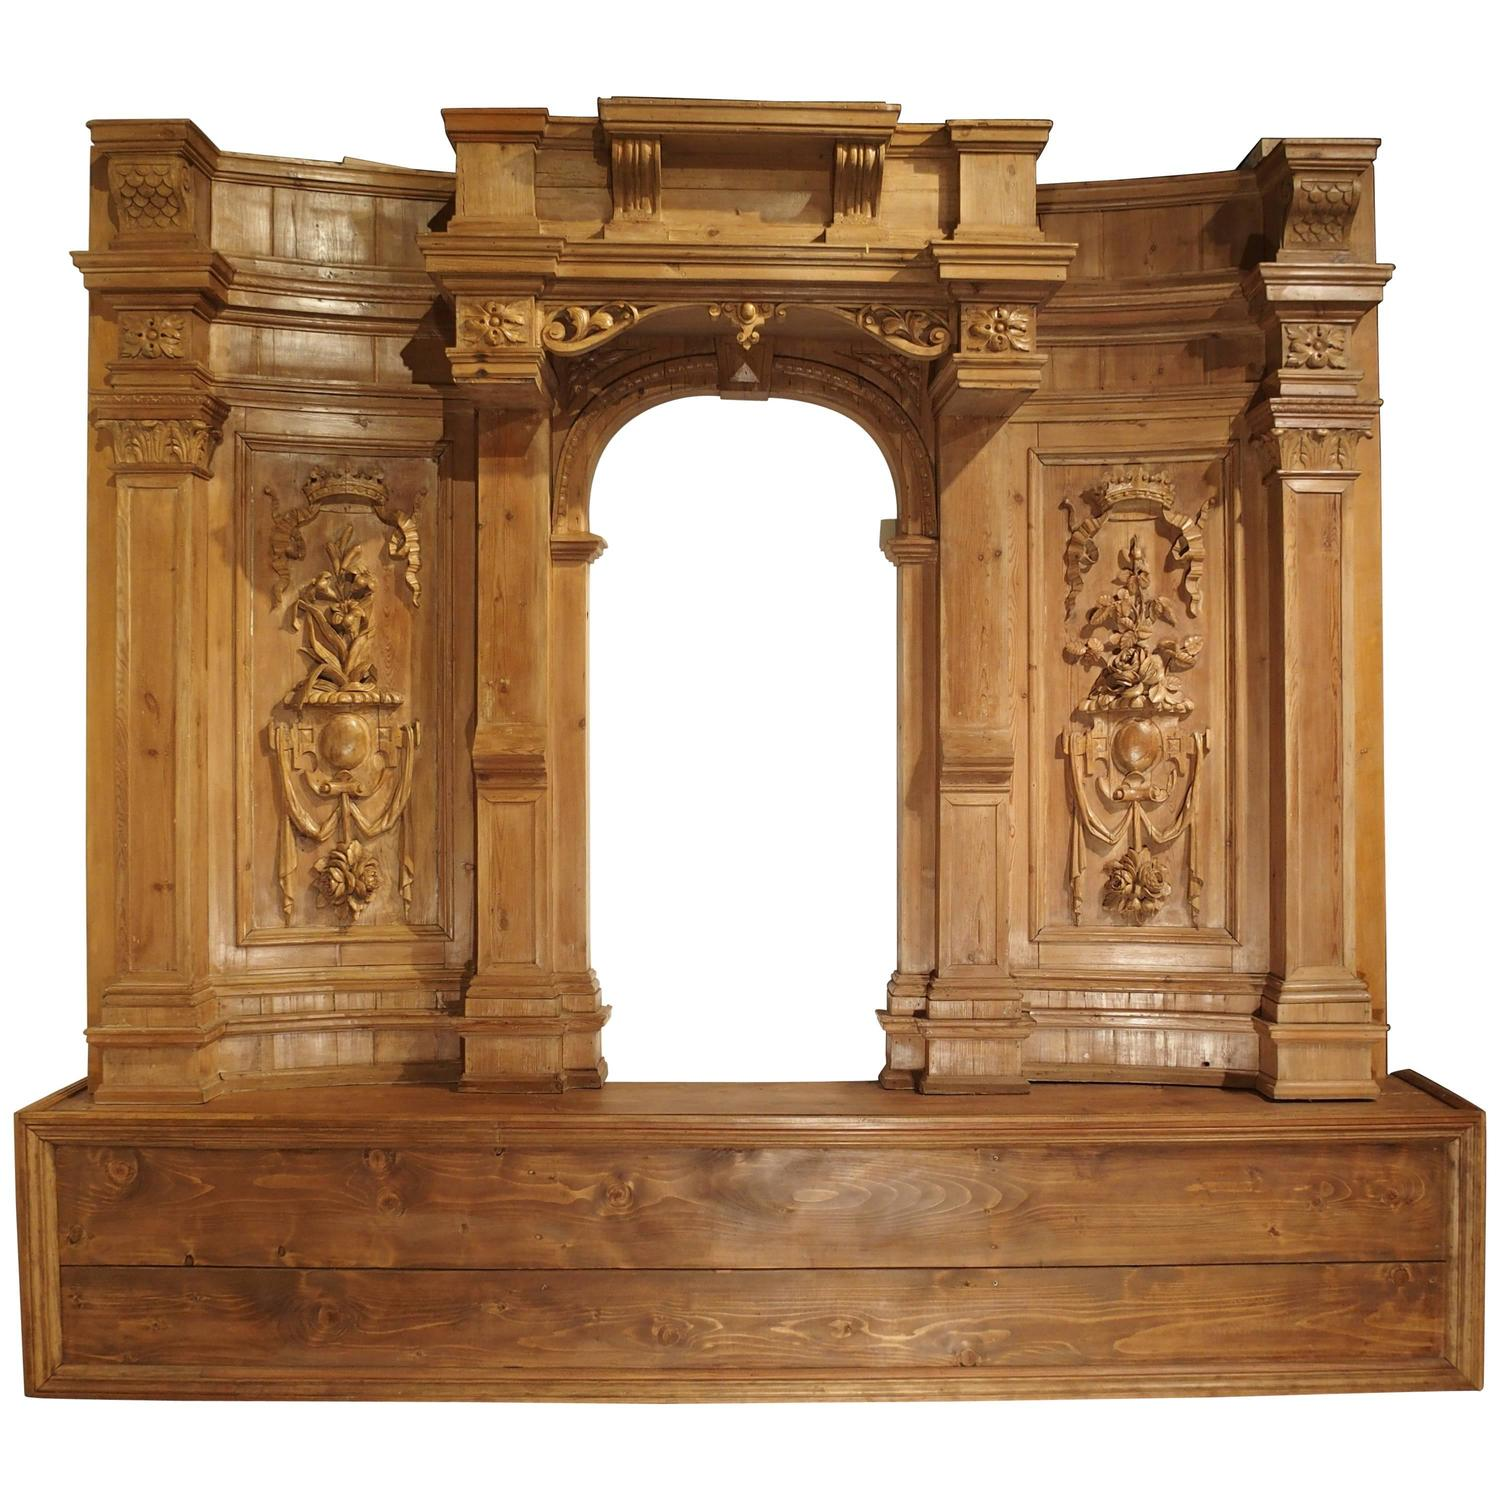 Unique Antique Furniture: Large And Unique Antique French Boiserie With Covered